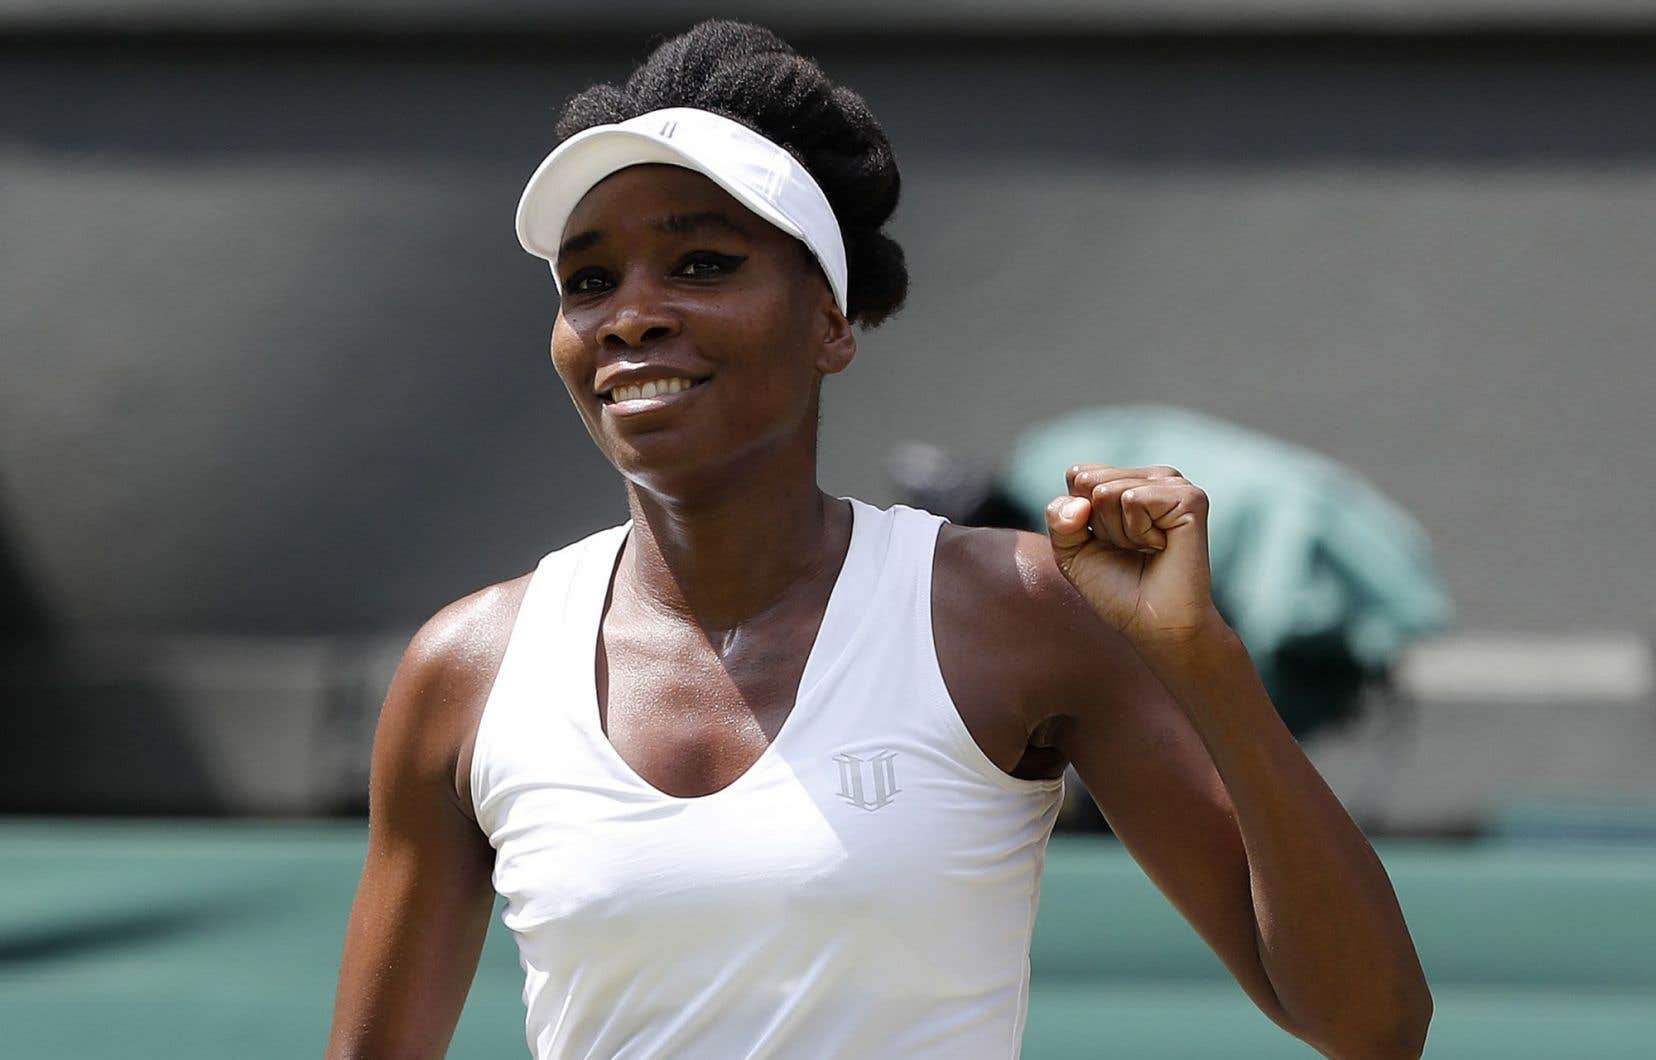 La quintuple championne de Wimbledon, Venus Williams